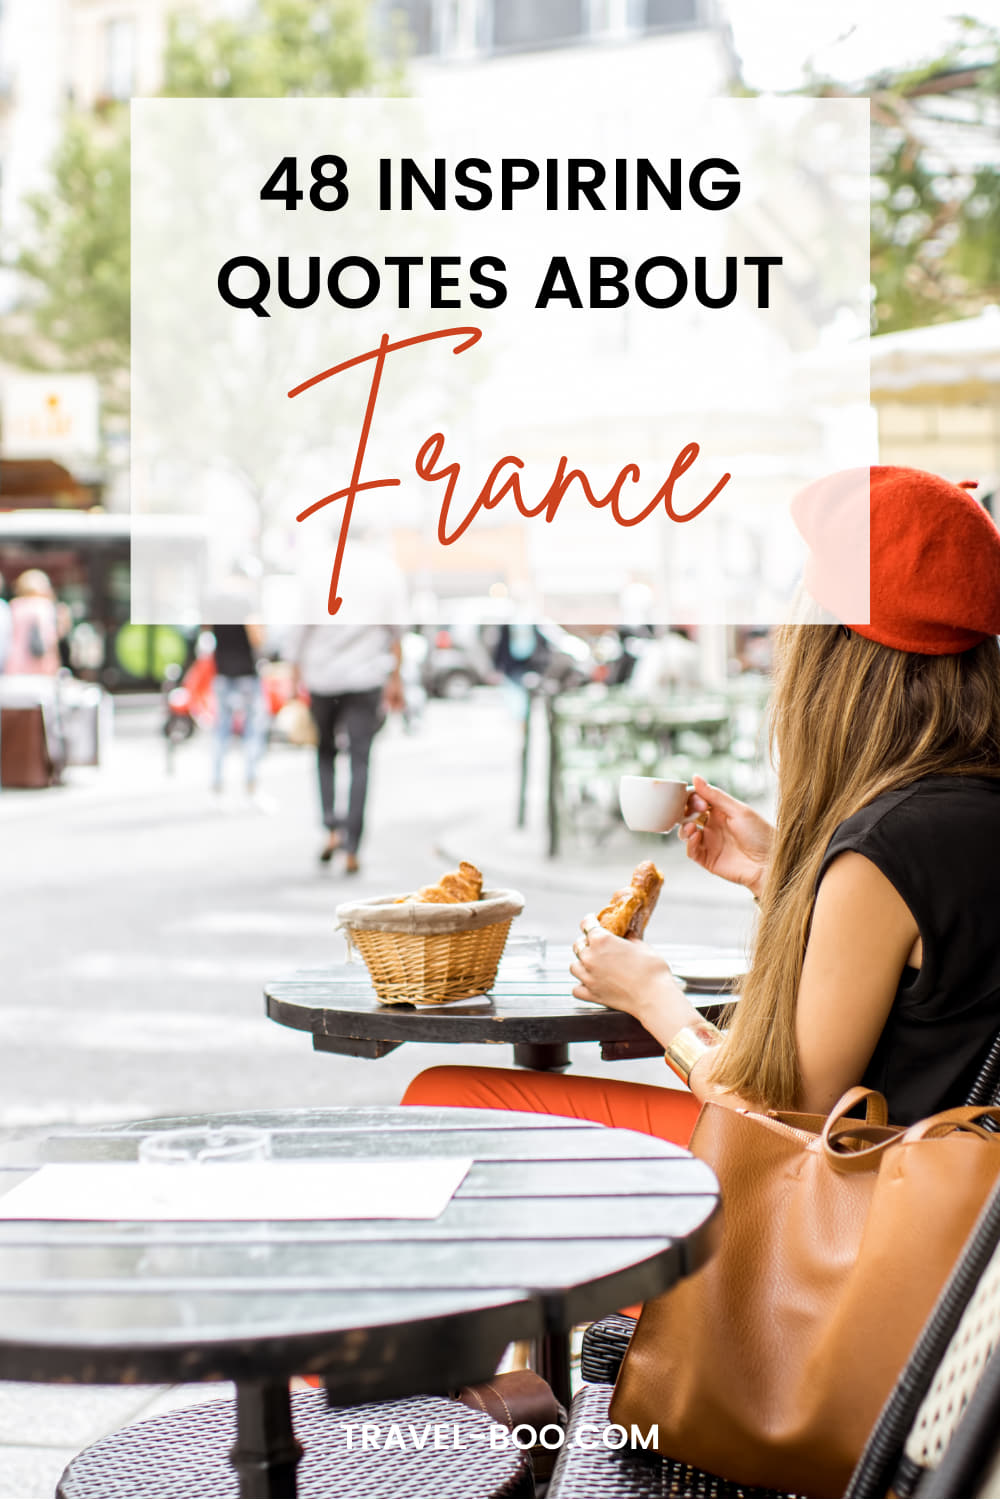 48 Iconic Quotes About France and About French Life! France Travel Quotes, Paris Quotes, Quotes About France, Paris Travel, France Travel.